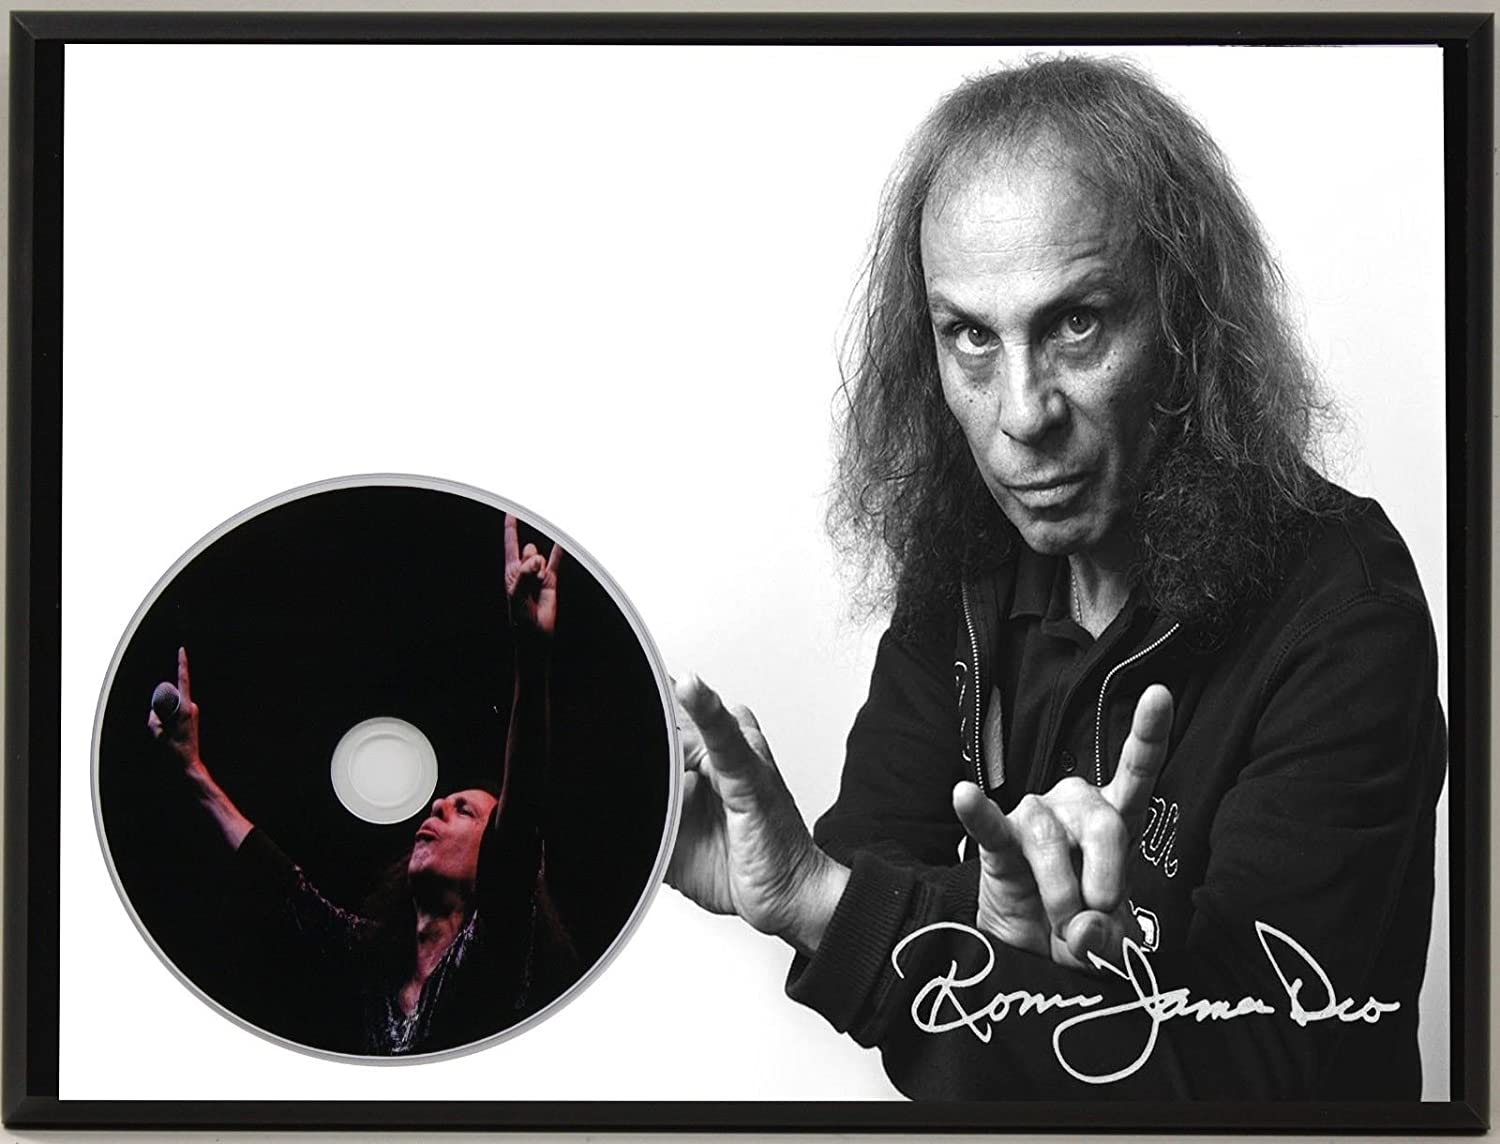 RONNIE JAMES DIO LTD EDITION SIGNATURE SERIES PICTURE CD DISPLAY GIFT